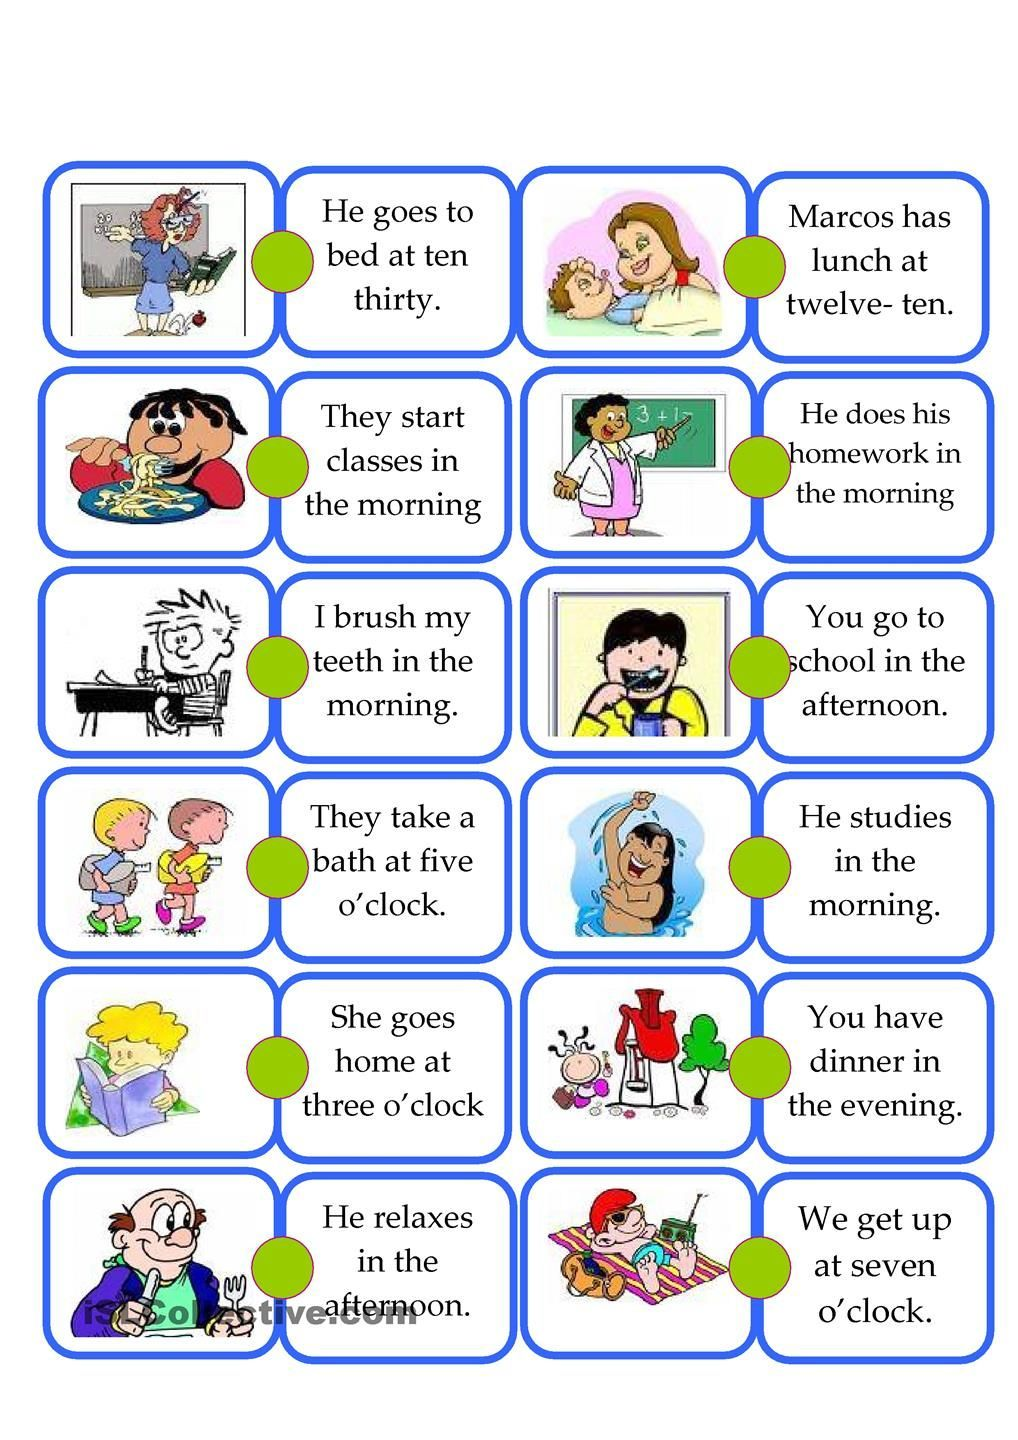 childs daily activities - HD1018×1440